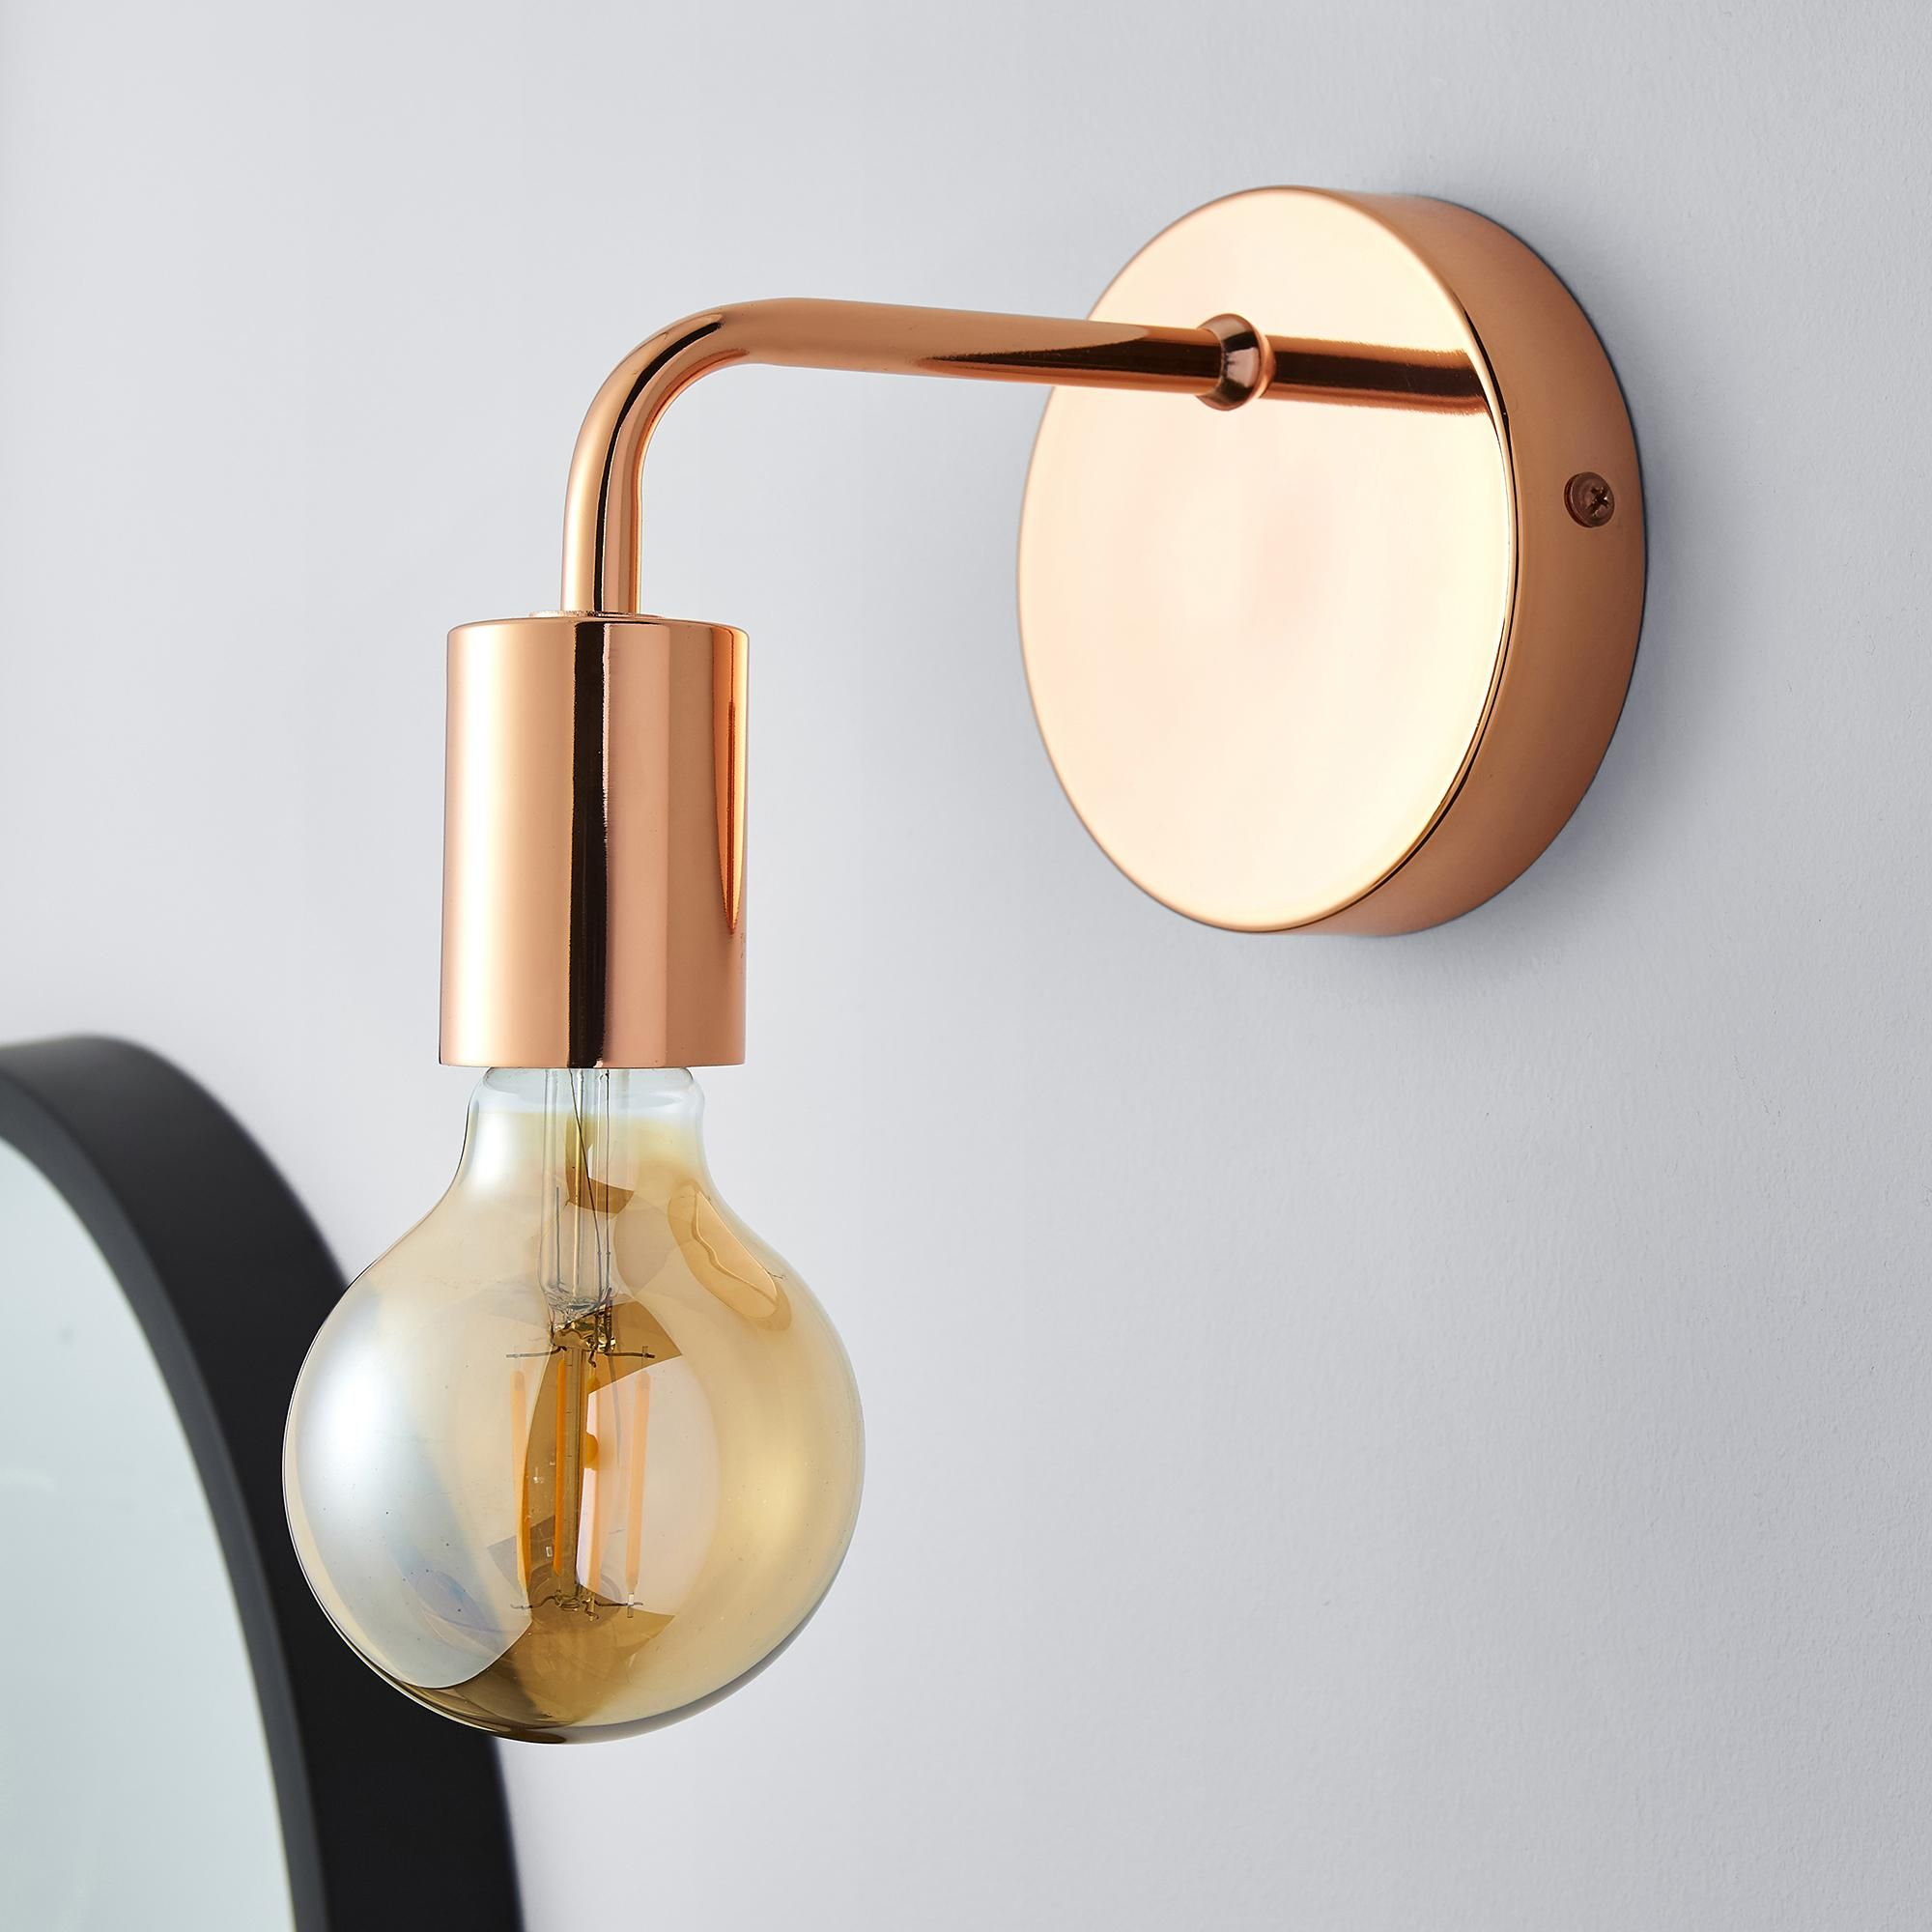 Adonis Copper Wall Light in 2020 | Copper wall light, Wall